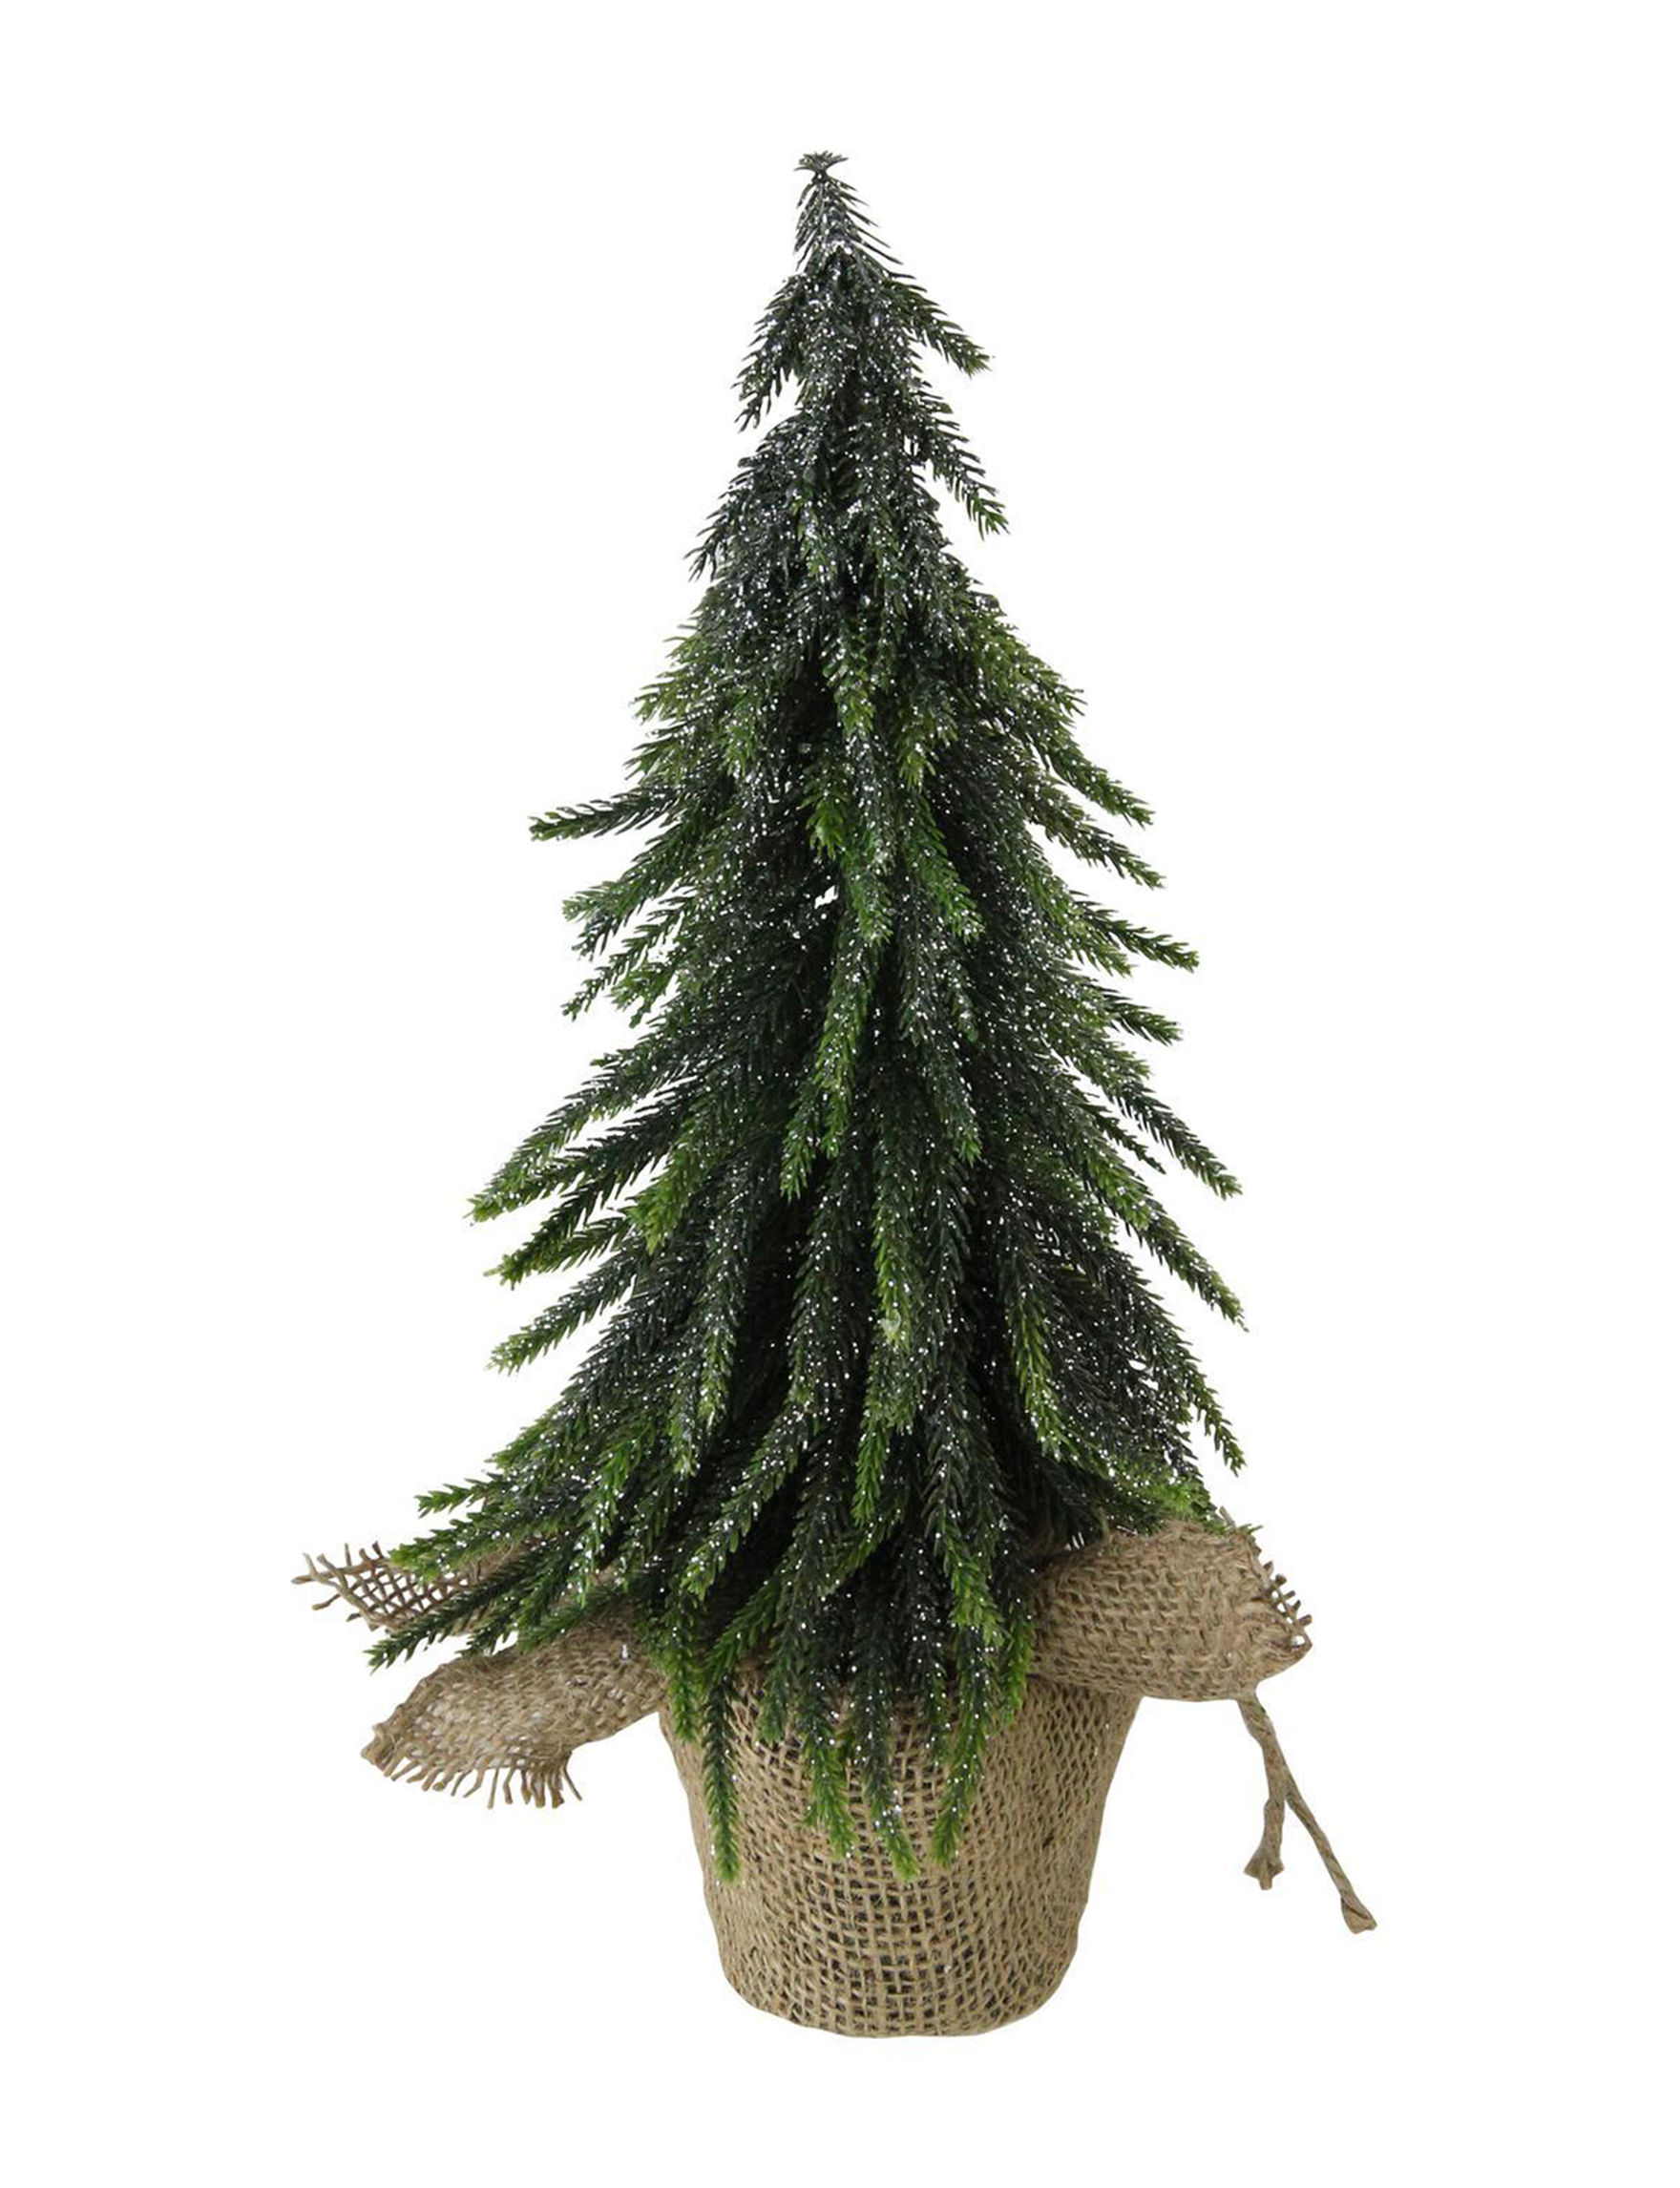 Northlight Green Christmas Trees Decorative Objects Holiday Decor Home Accents